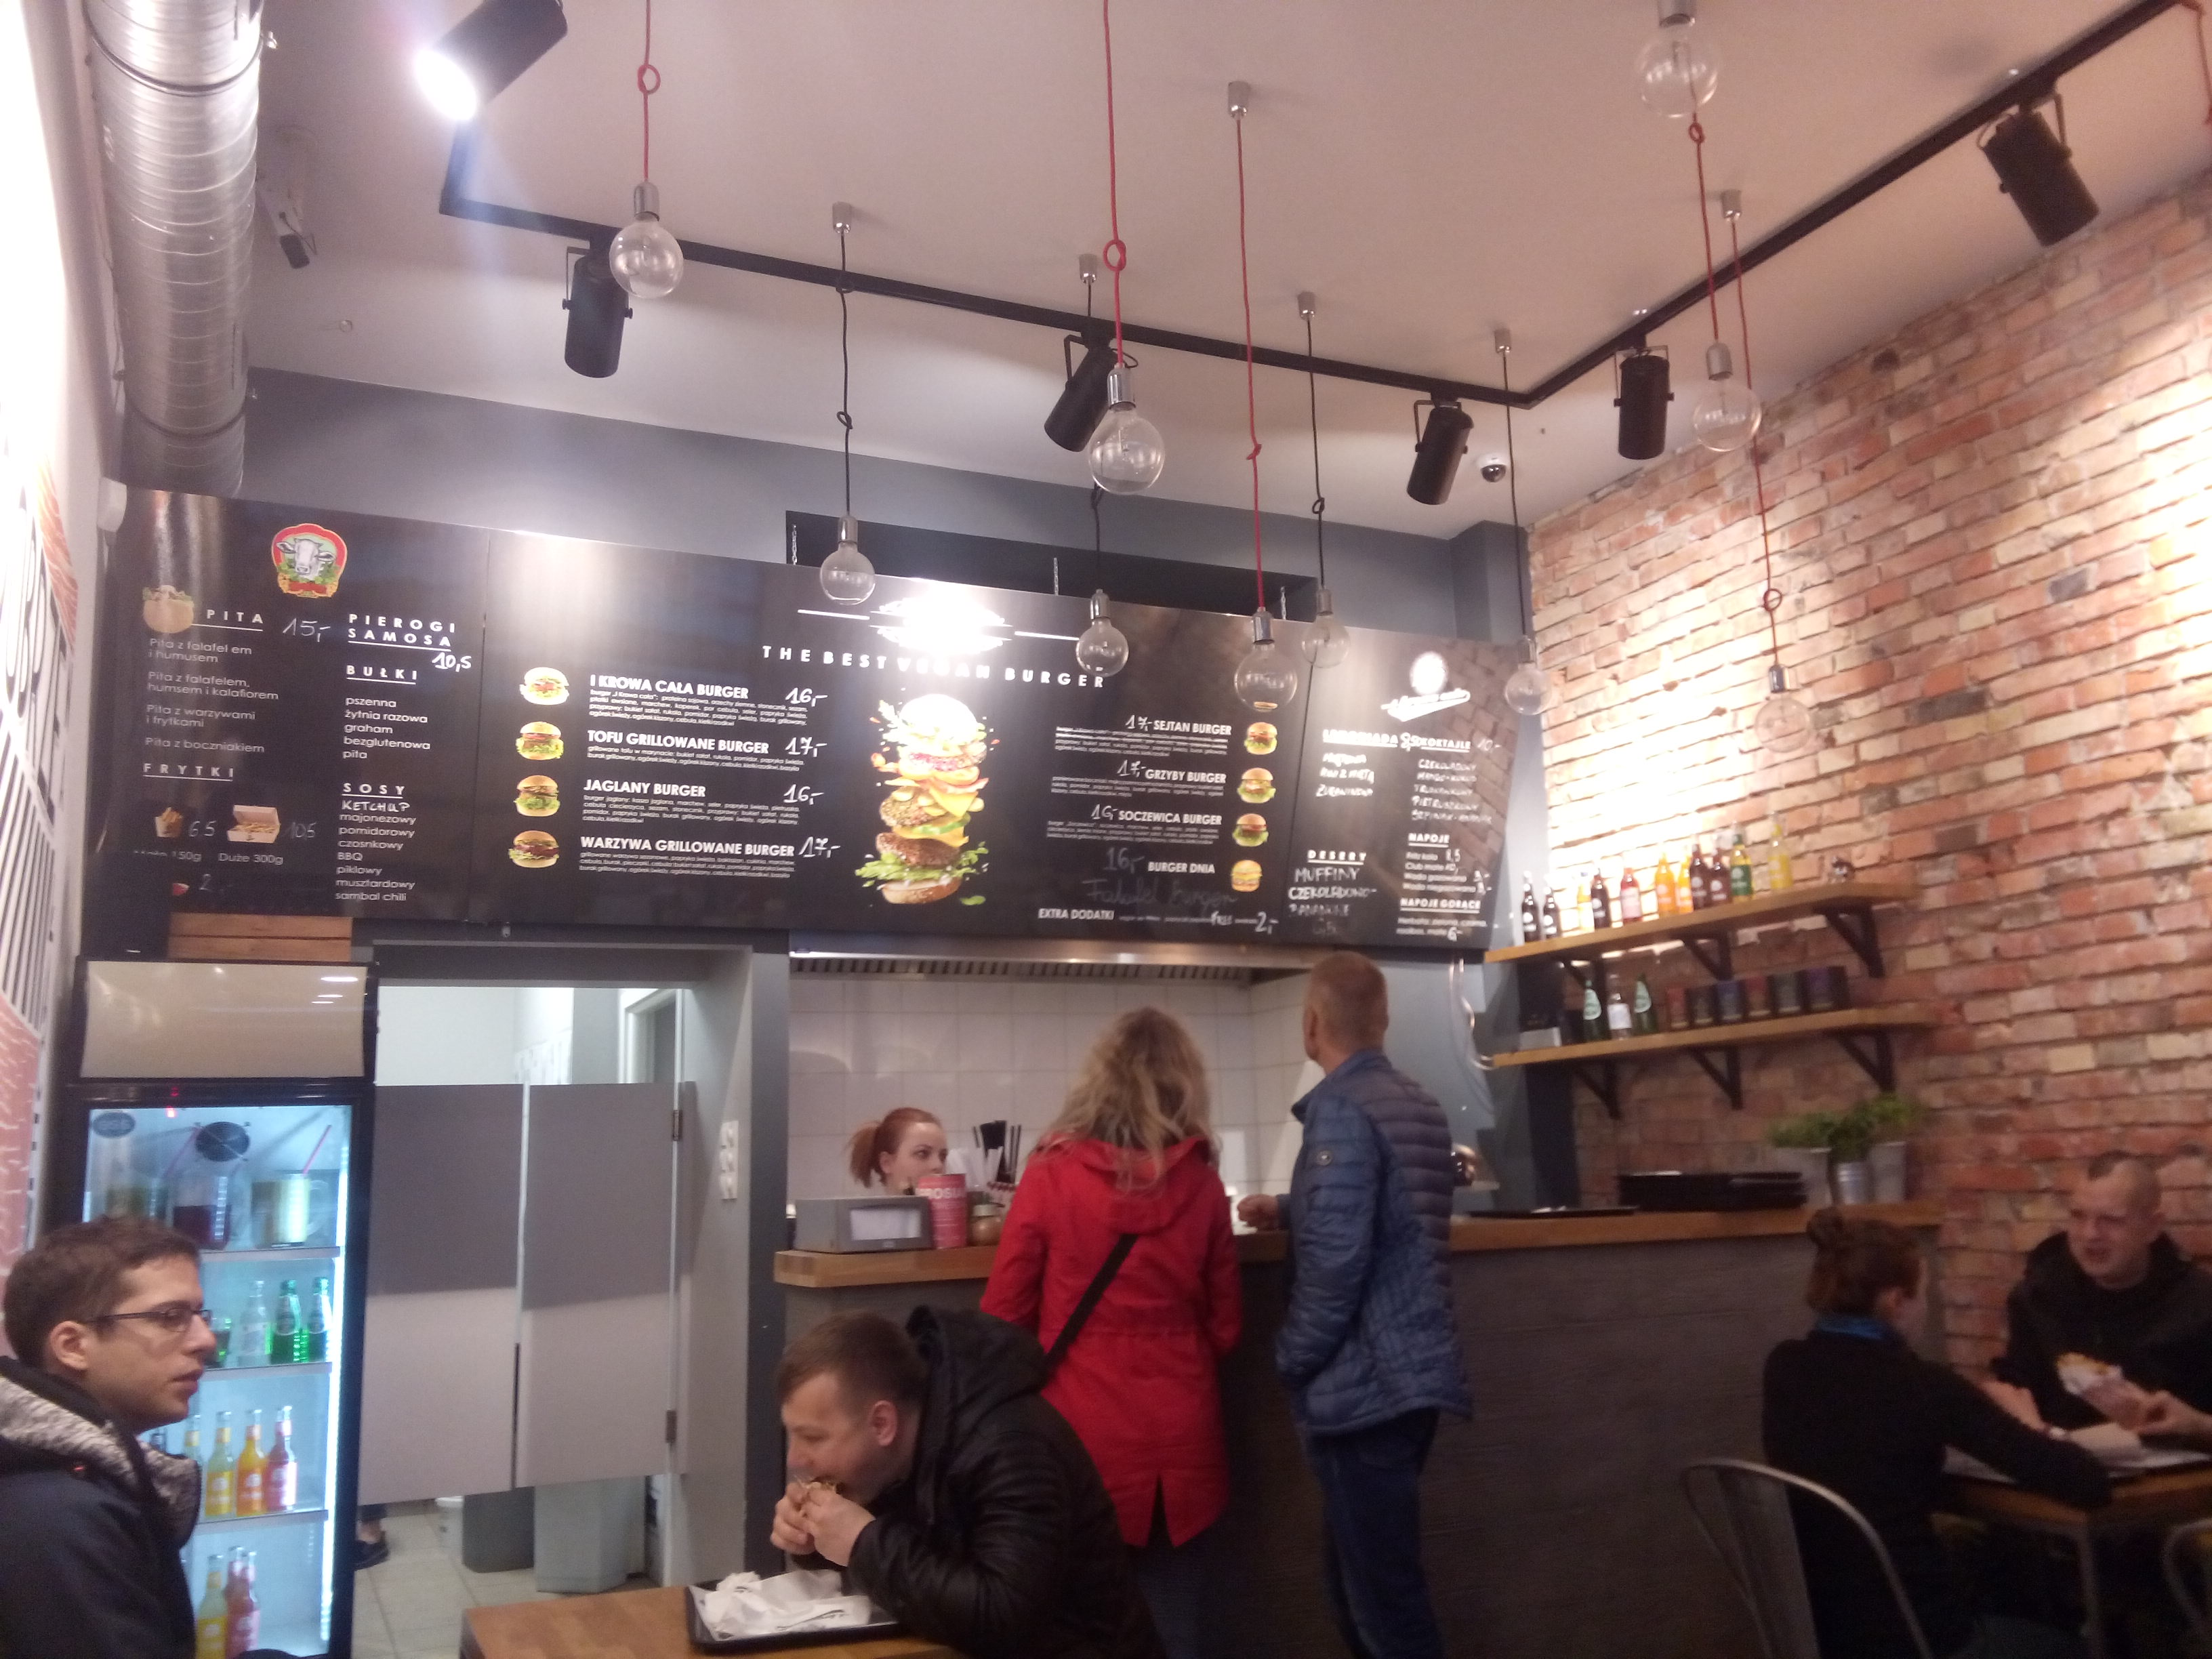 A brick interior of a modern cafe, with a menu on the wall above the counter, and some people sitting or standing around